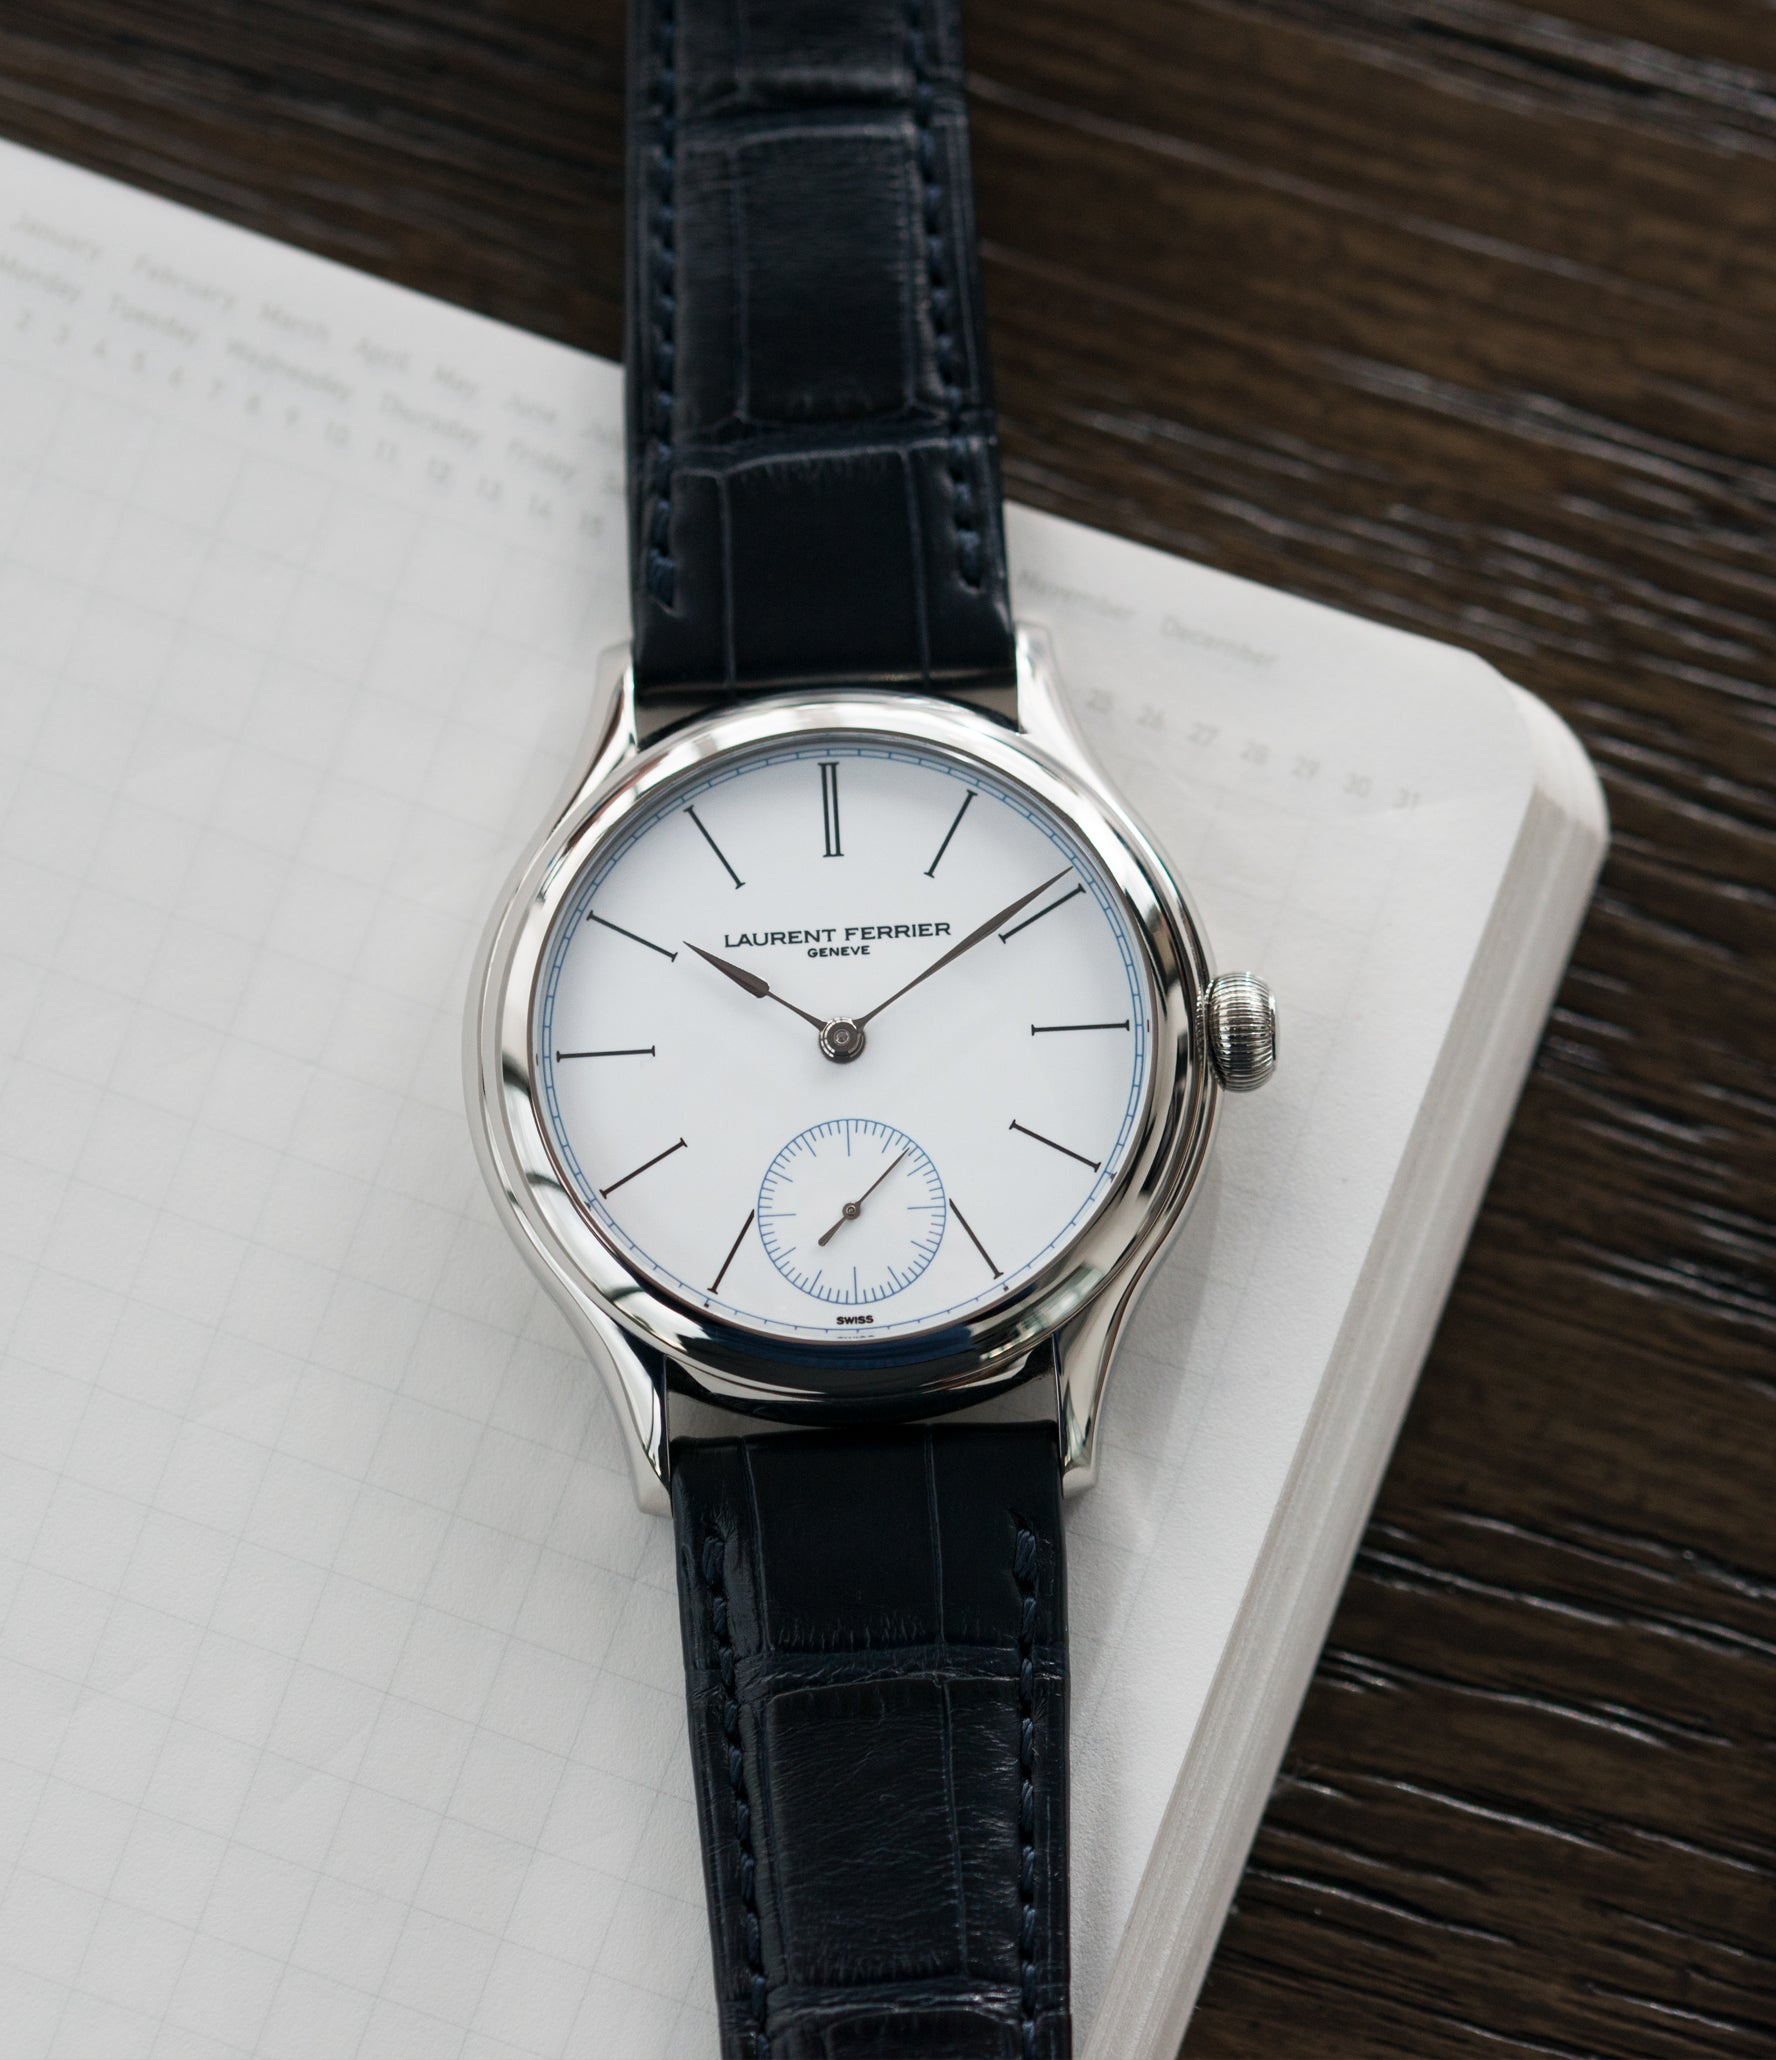 luxury rare dress watch Laurent Ferrier Galet Micro-Rotor FBN 230.02 Enamel dial steel watch for sale online at A Collected Man London UK approved seller of independent watchmaker Laurent Ferrier